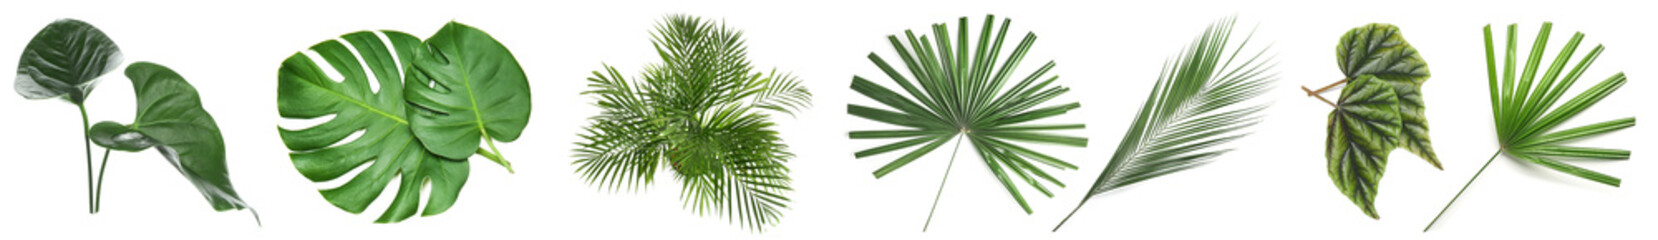 Door stickers Plant Set of green tropical leaves on white background